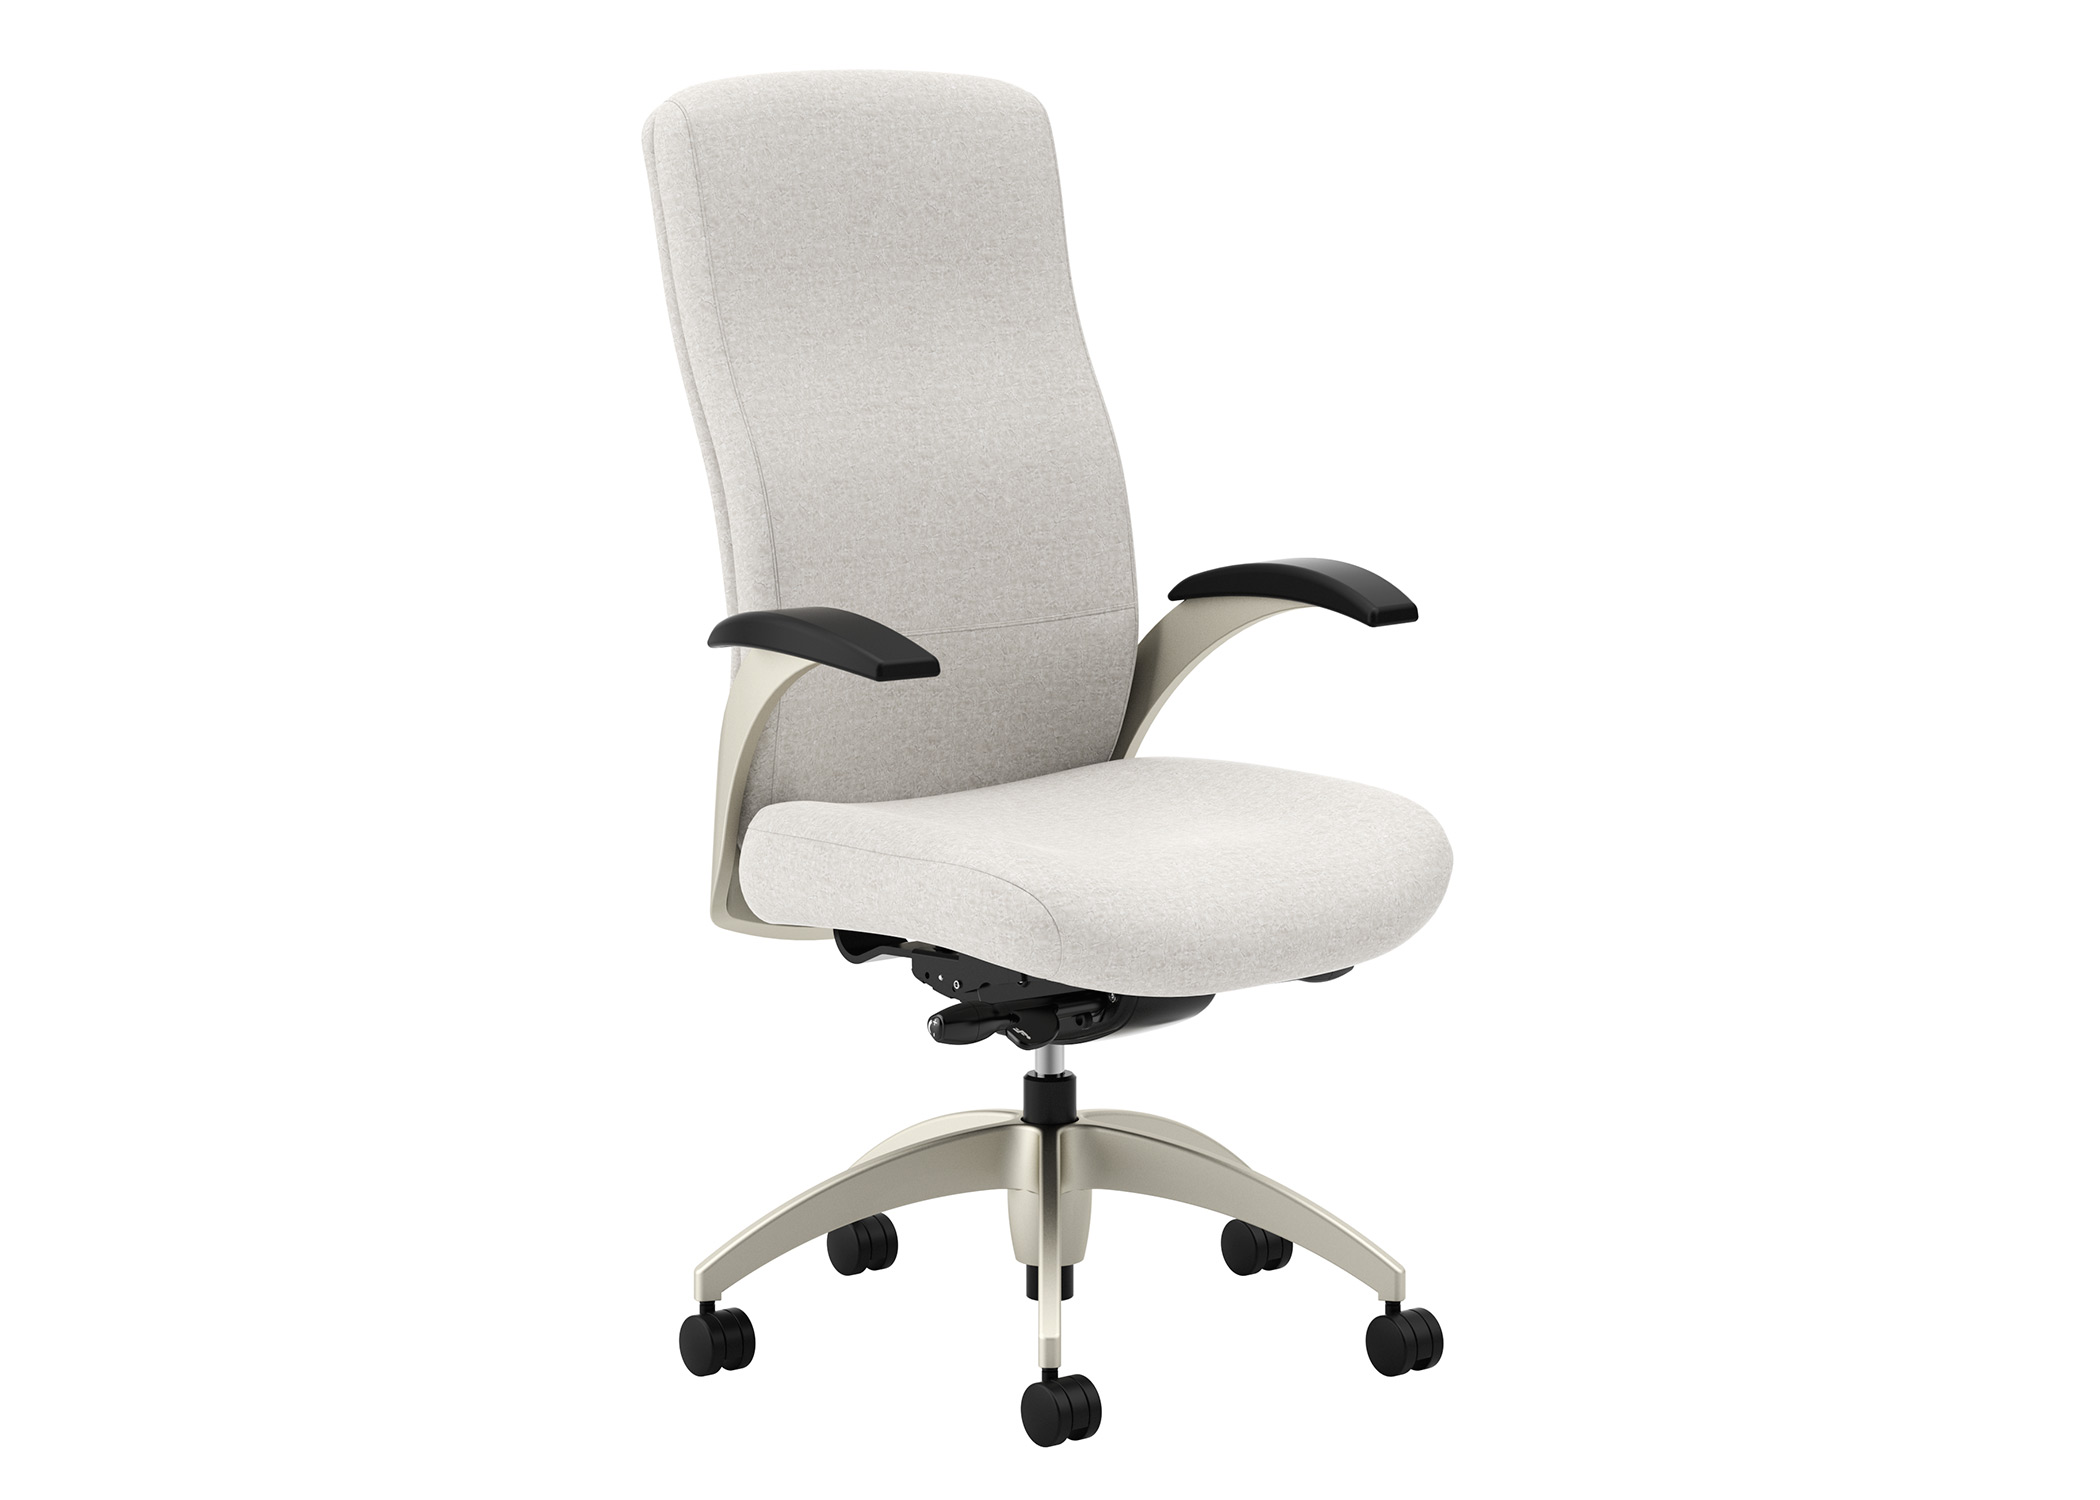 revolving chair other name patio webbing adjusting your national office furniture aurora